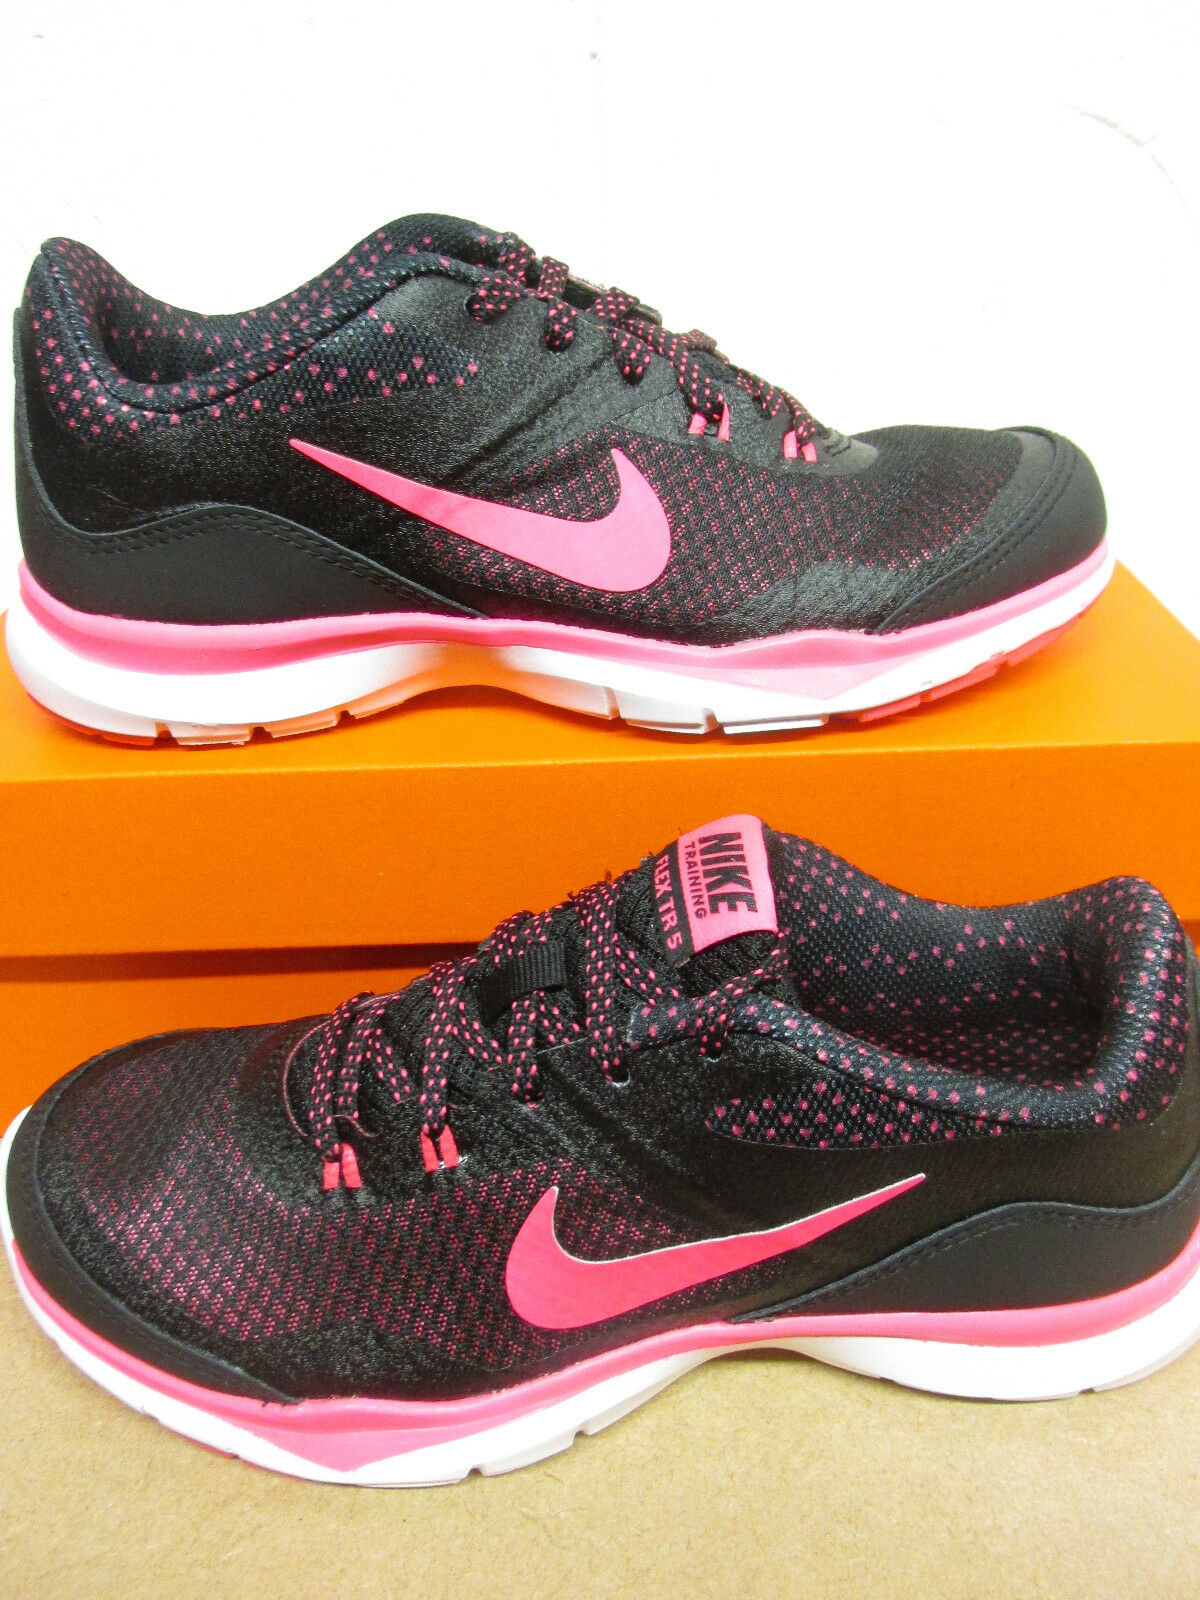 Nike Femmes Flexible Baskets 5 Imprimé Basket Course 749184 018 Baskets